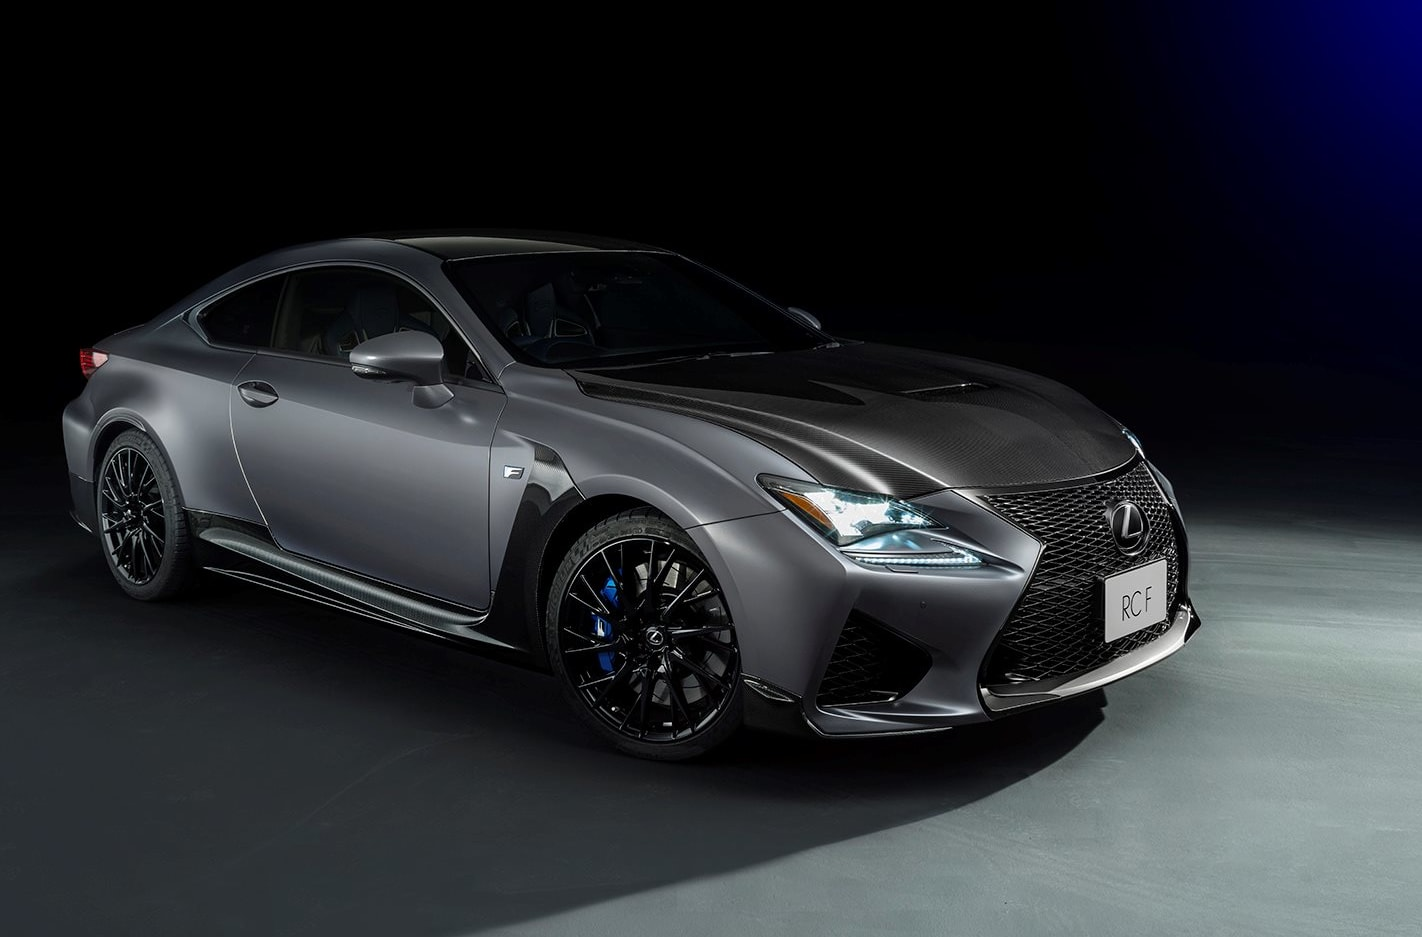 2018 Lexus RC F and GS F special editions bound for Australia